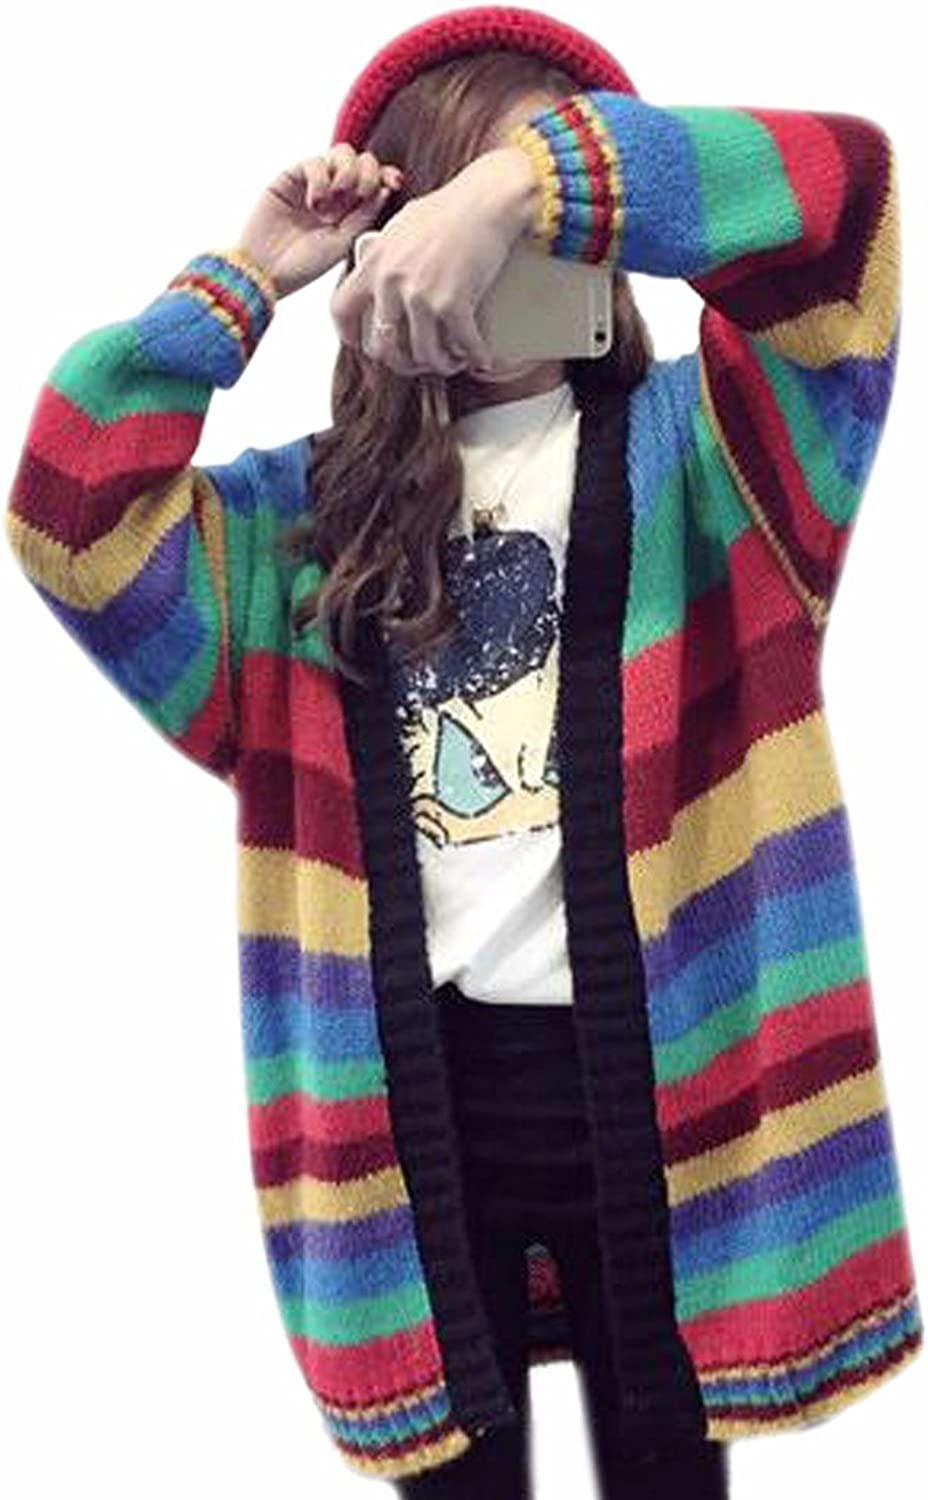 QIYUN.Z Woman Girls Rainbow Mixed color Baggy Cardigans Sweater Coat